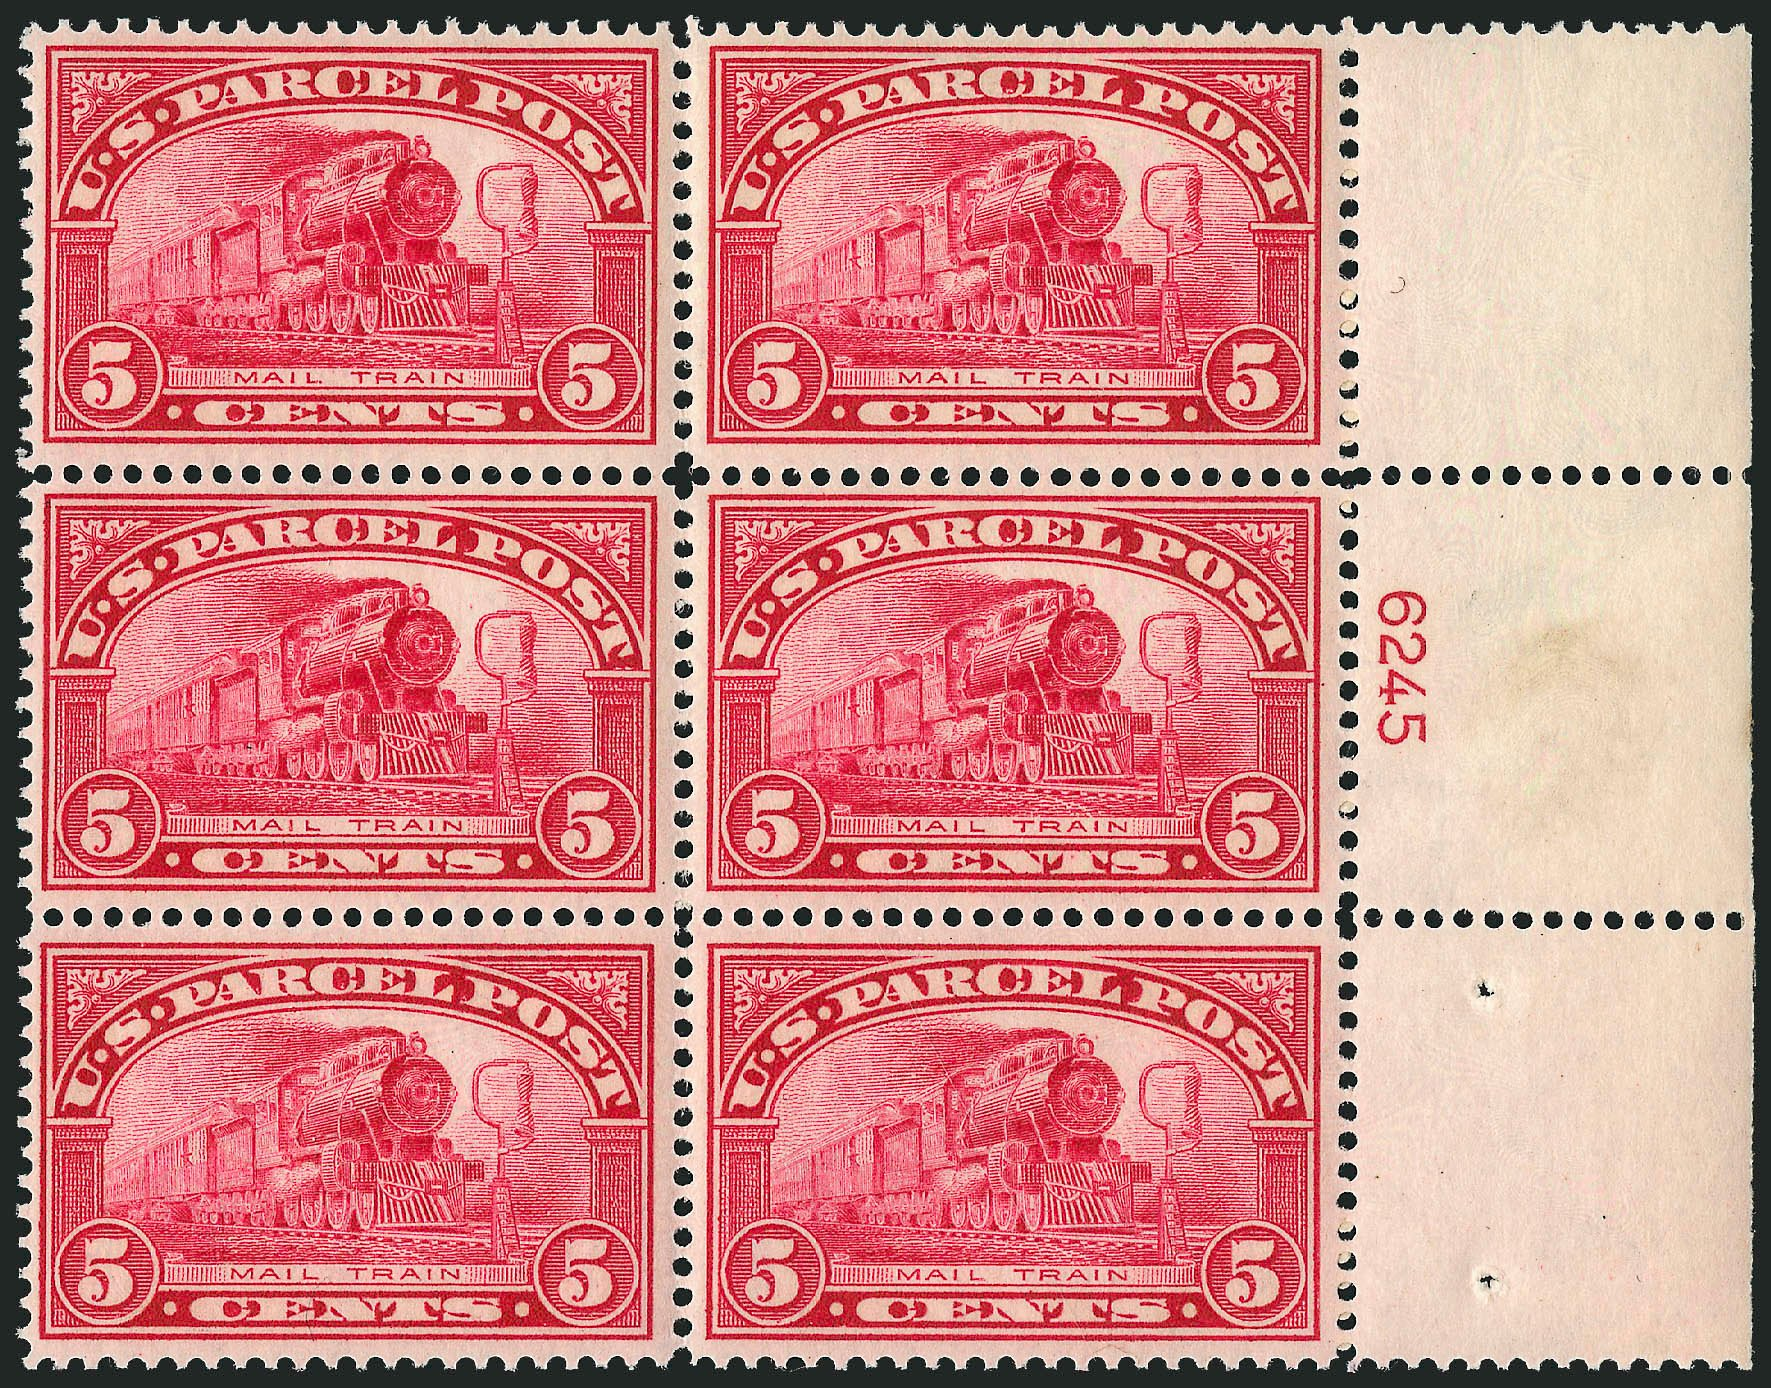 Values of US Stamp Scott Catalog Q5 - 1913 5c Parcel Post. Robert Siegel Auction Galleries, Apr 2015, Sale 1096, Lot 948